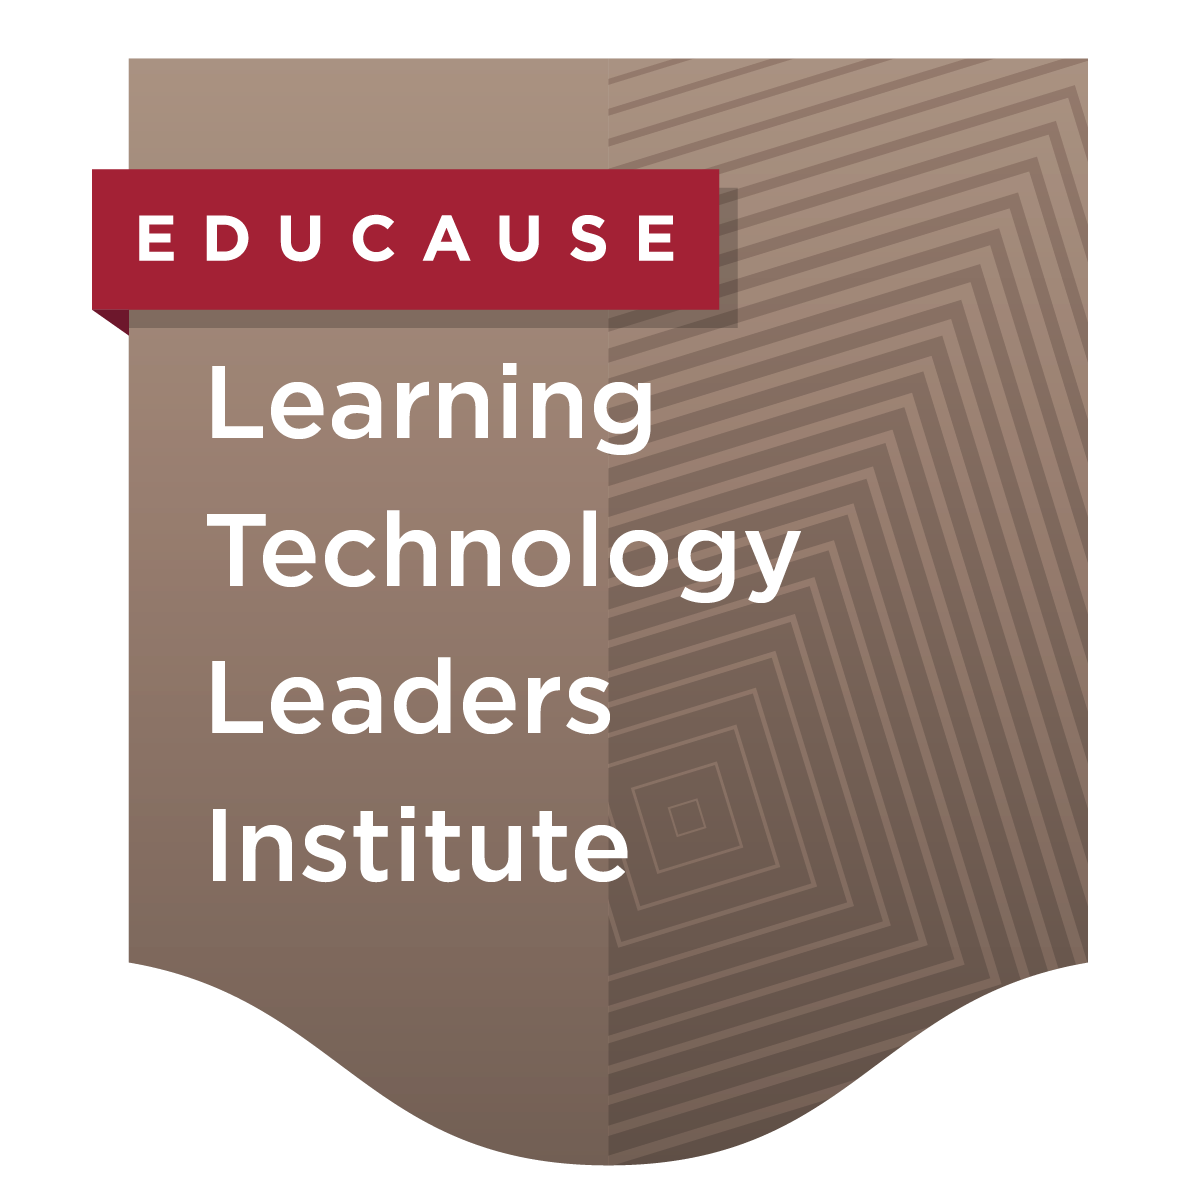 Learning Technology Leaders Institute